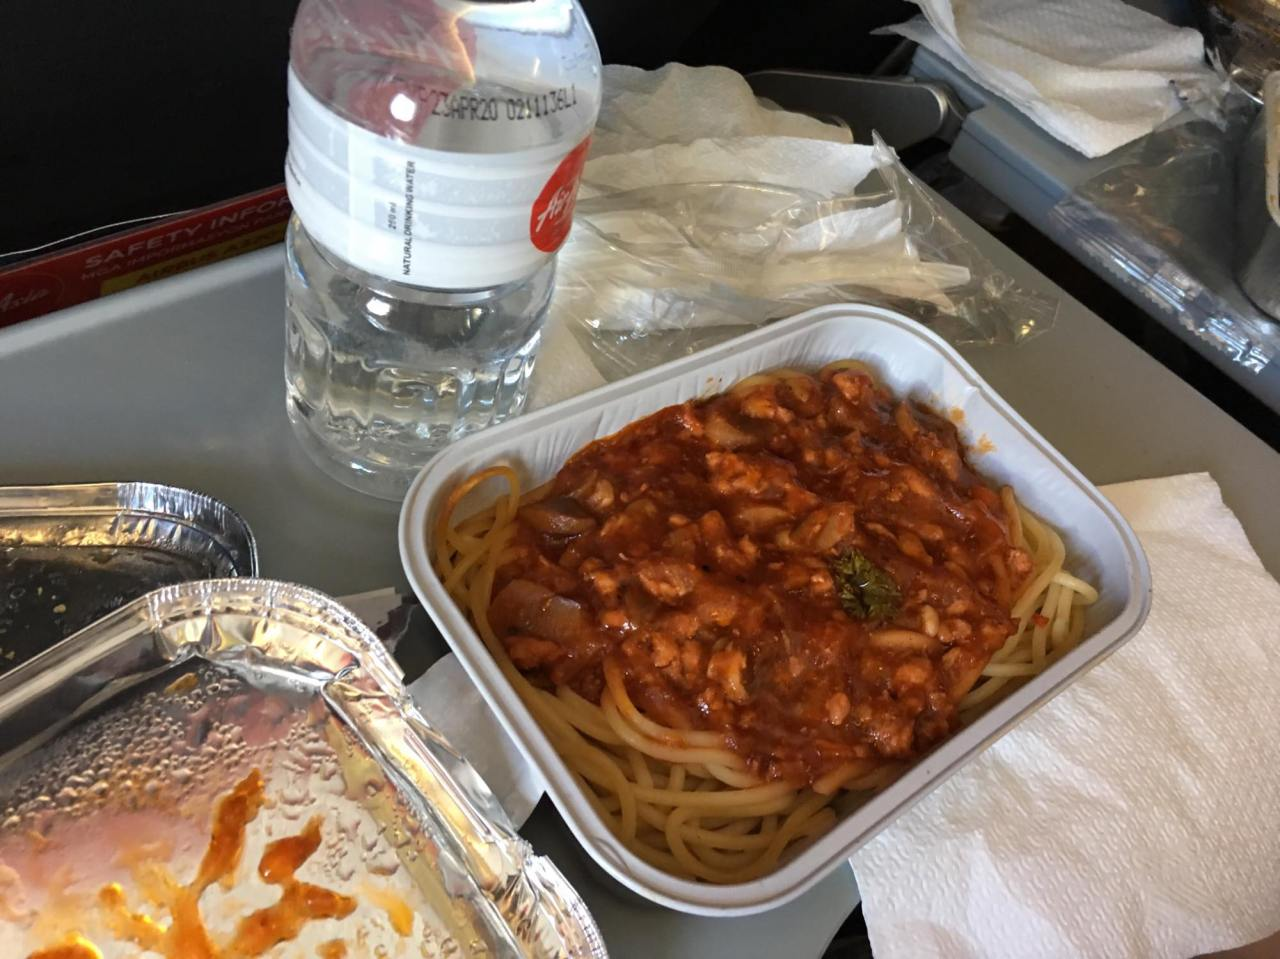 chicken spaghetti inflight meal from Airasia